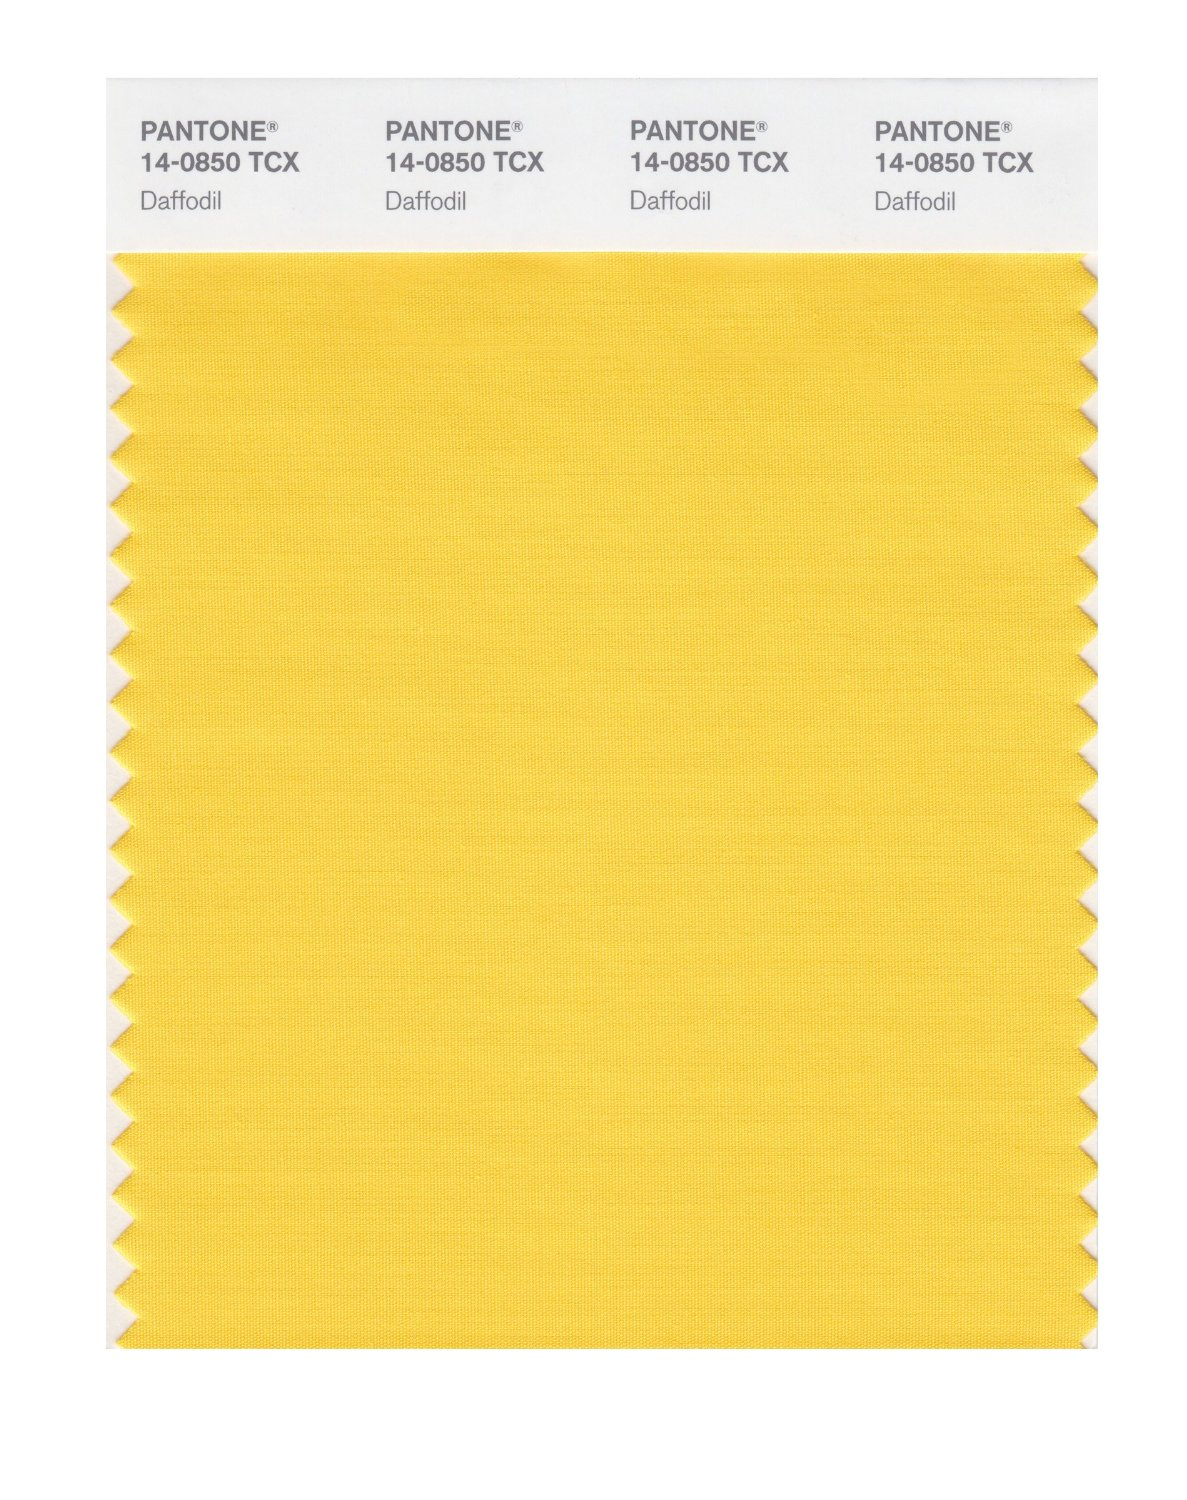 Pantone Smart Swatch 14-0850 Daffodil